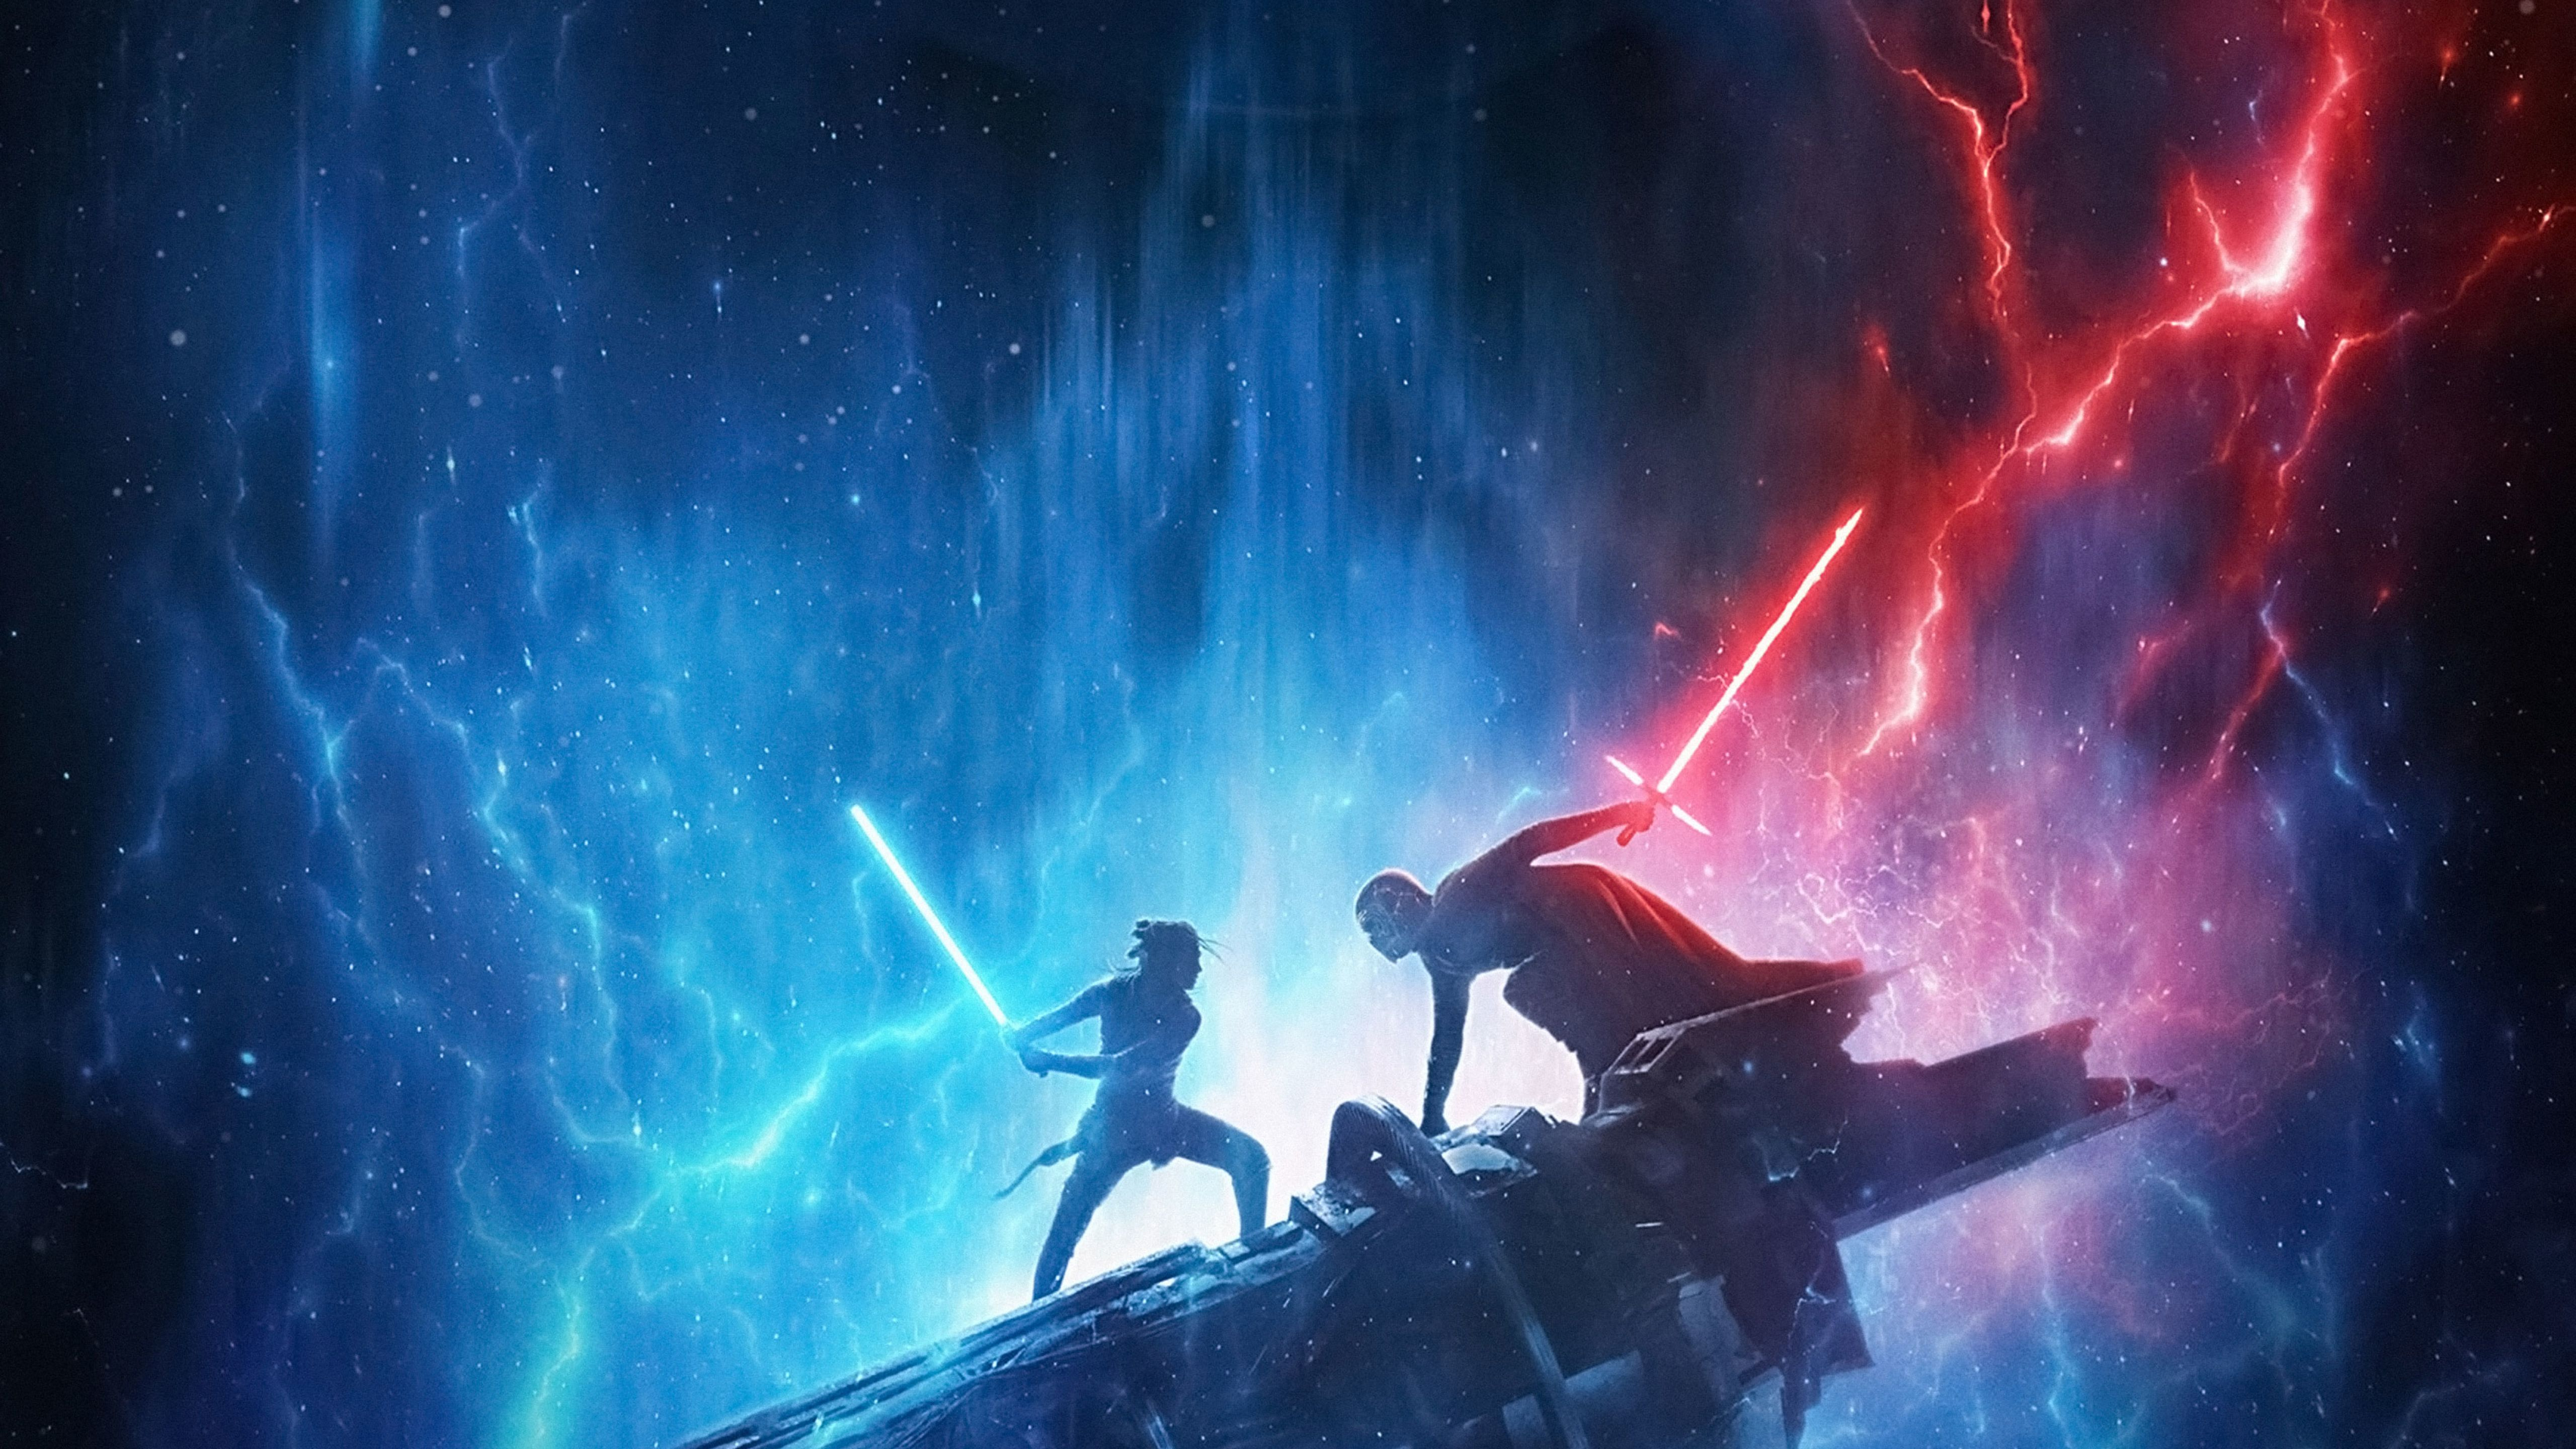 5120 X 2880 Star Wars Wallpapers Top Free 5120 X 2880 Star Wars Backgrounds Wallpaperaccess